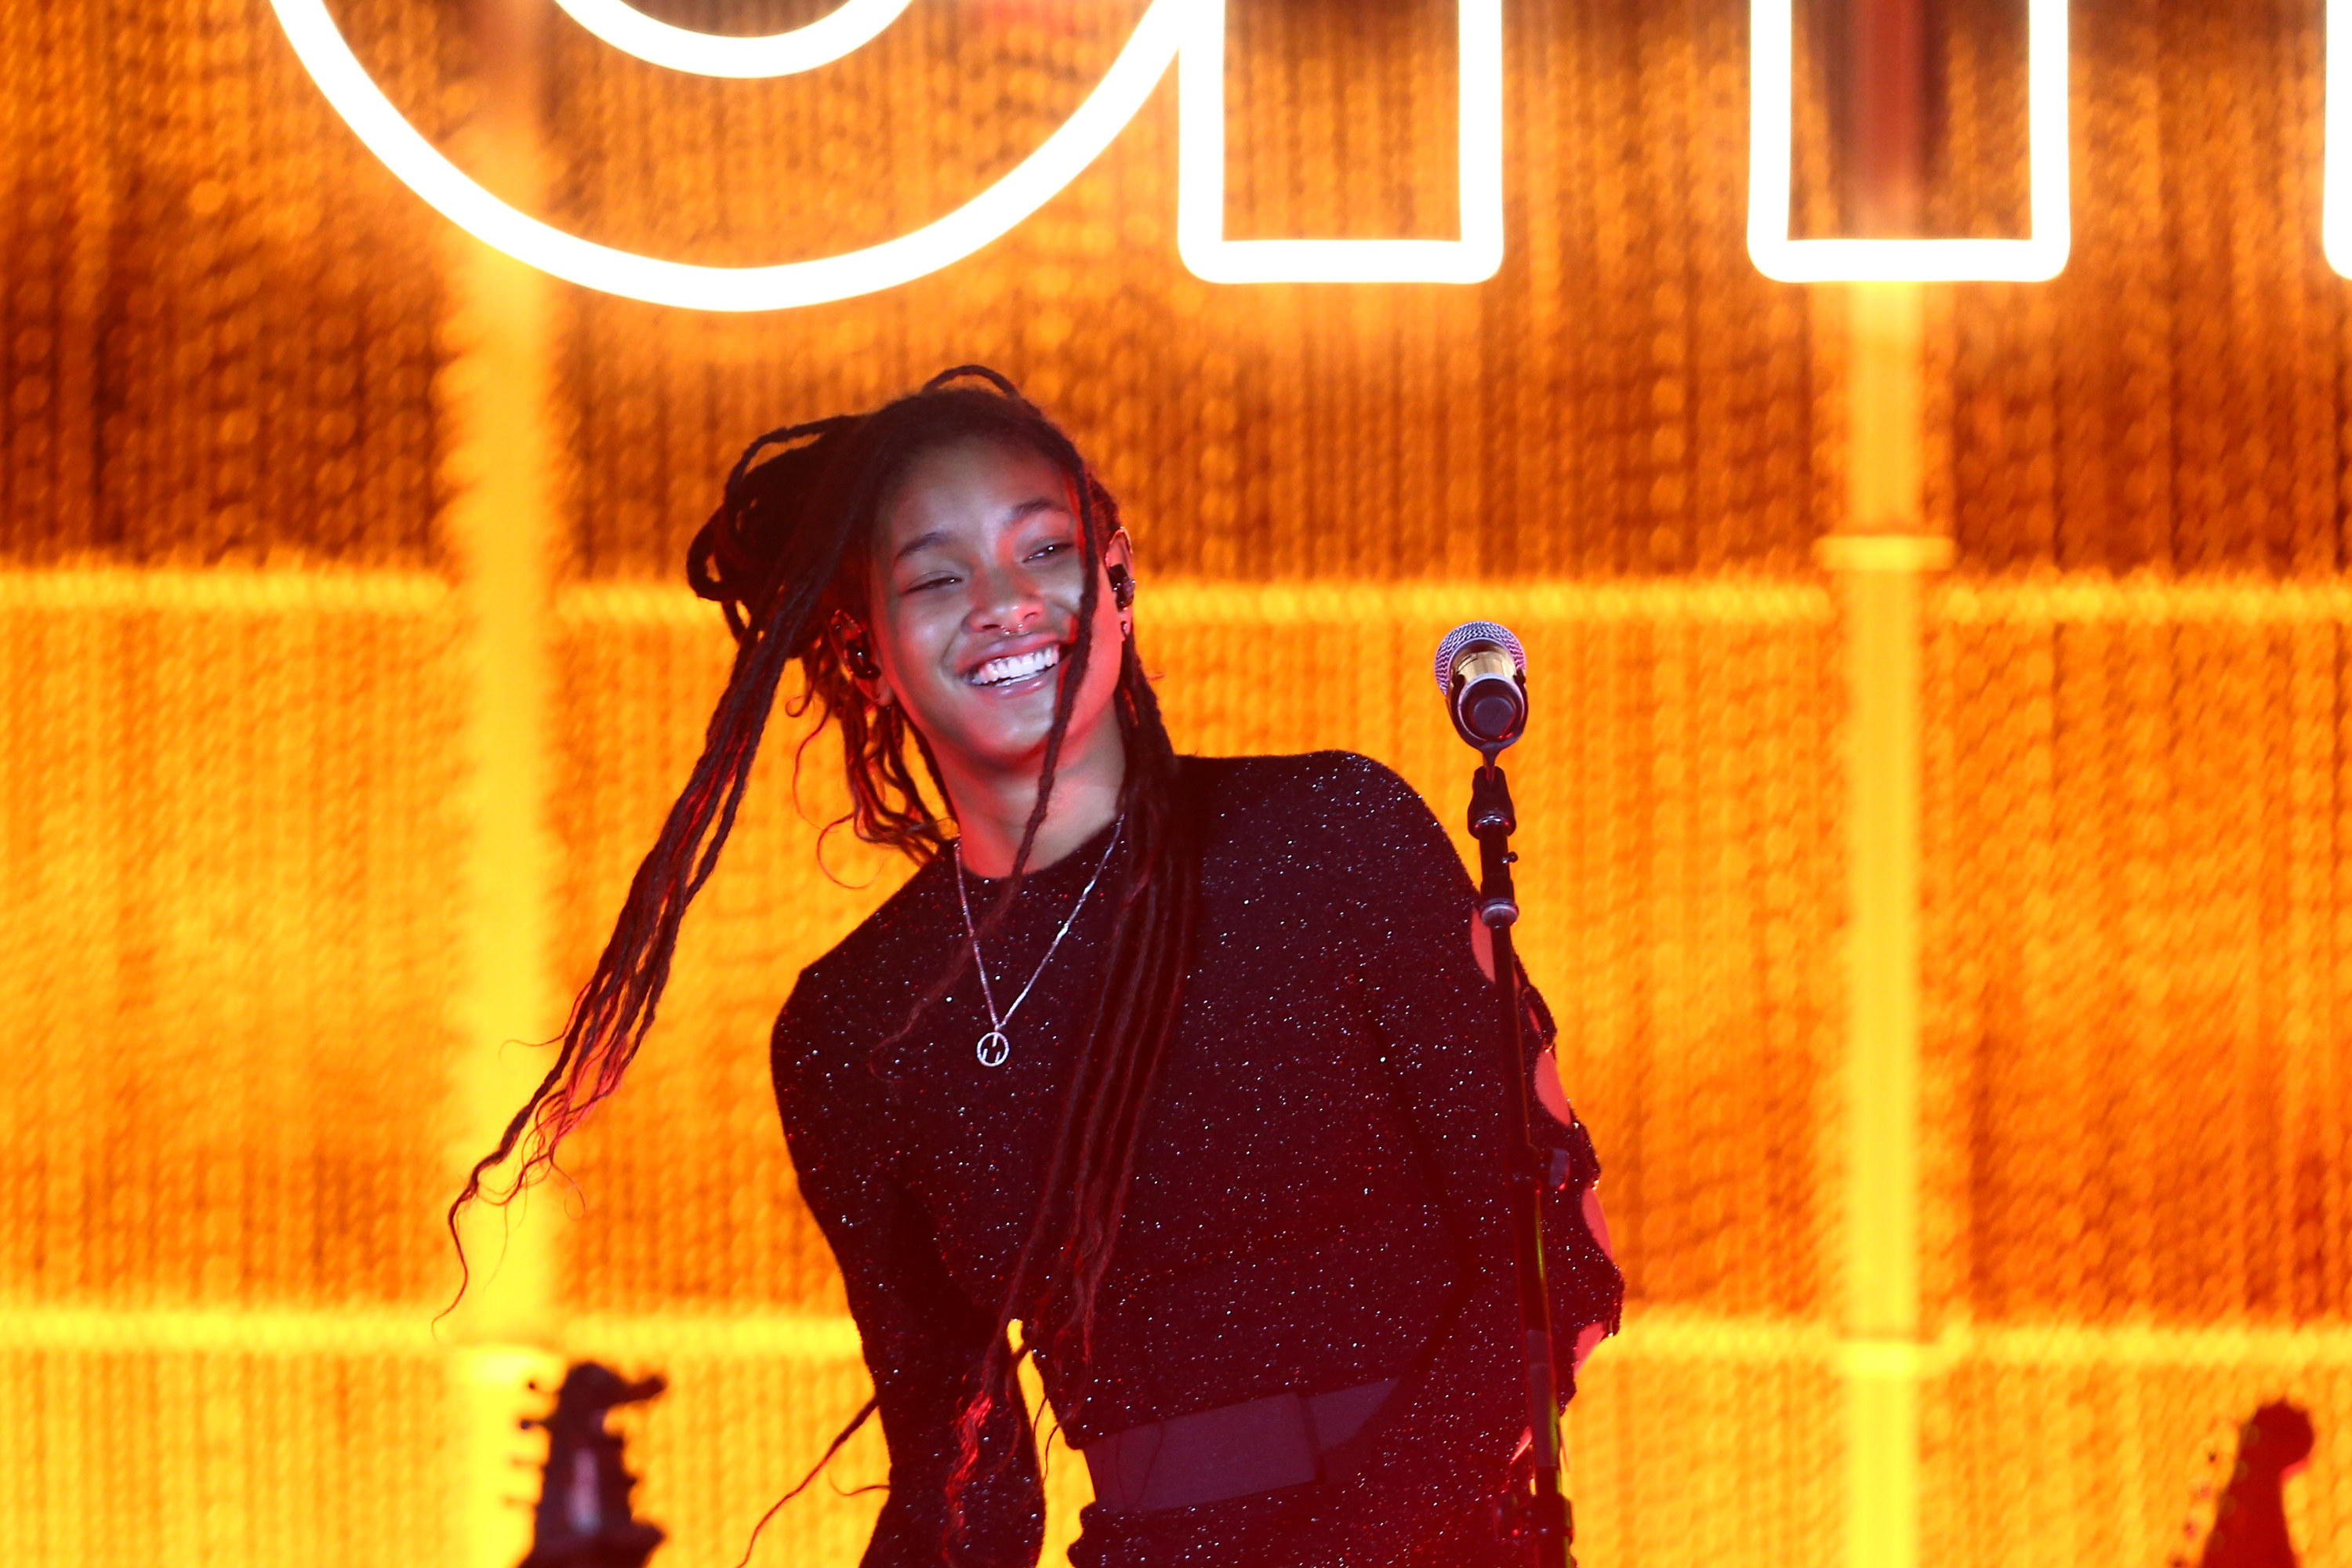 Willow Smith performs onstage during the Environmental Media Association 2nd Annual Honors Benefit Gala at Private Residence on September 28, 2019 in Pacific Palisades, California